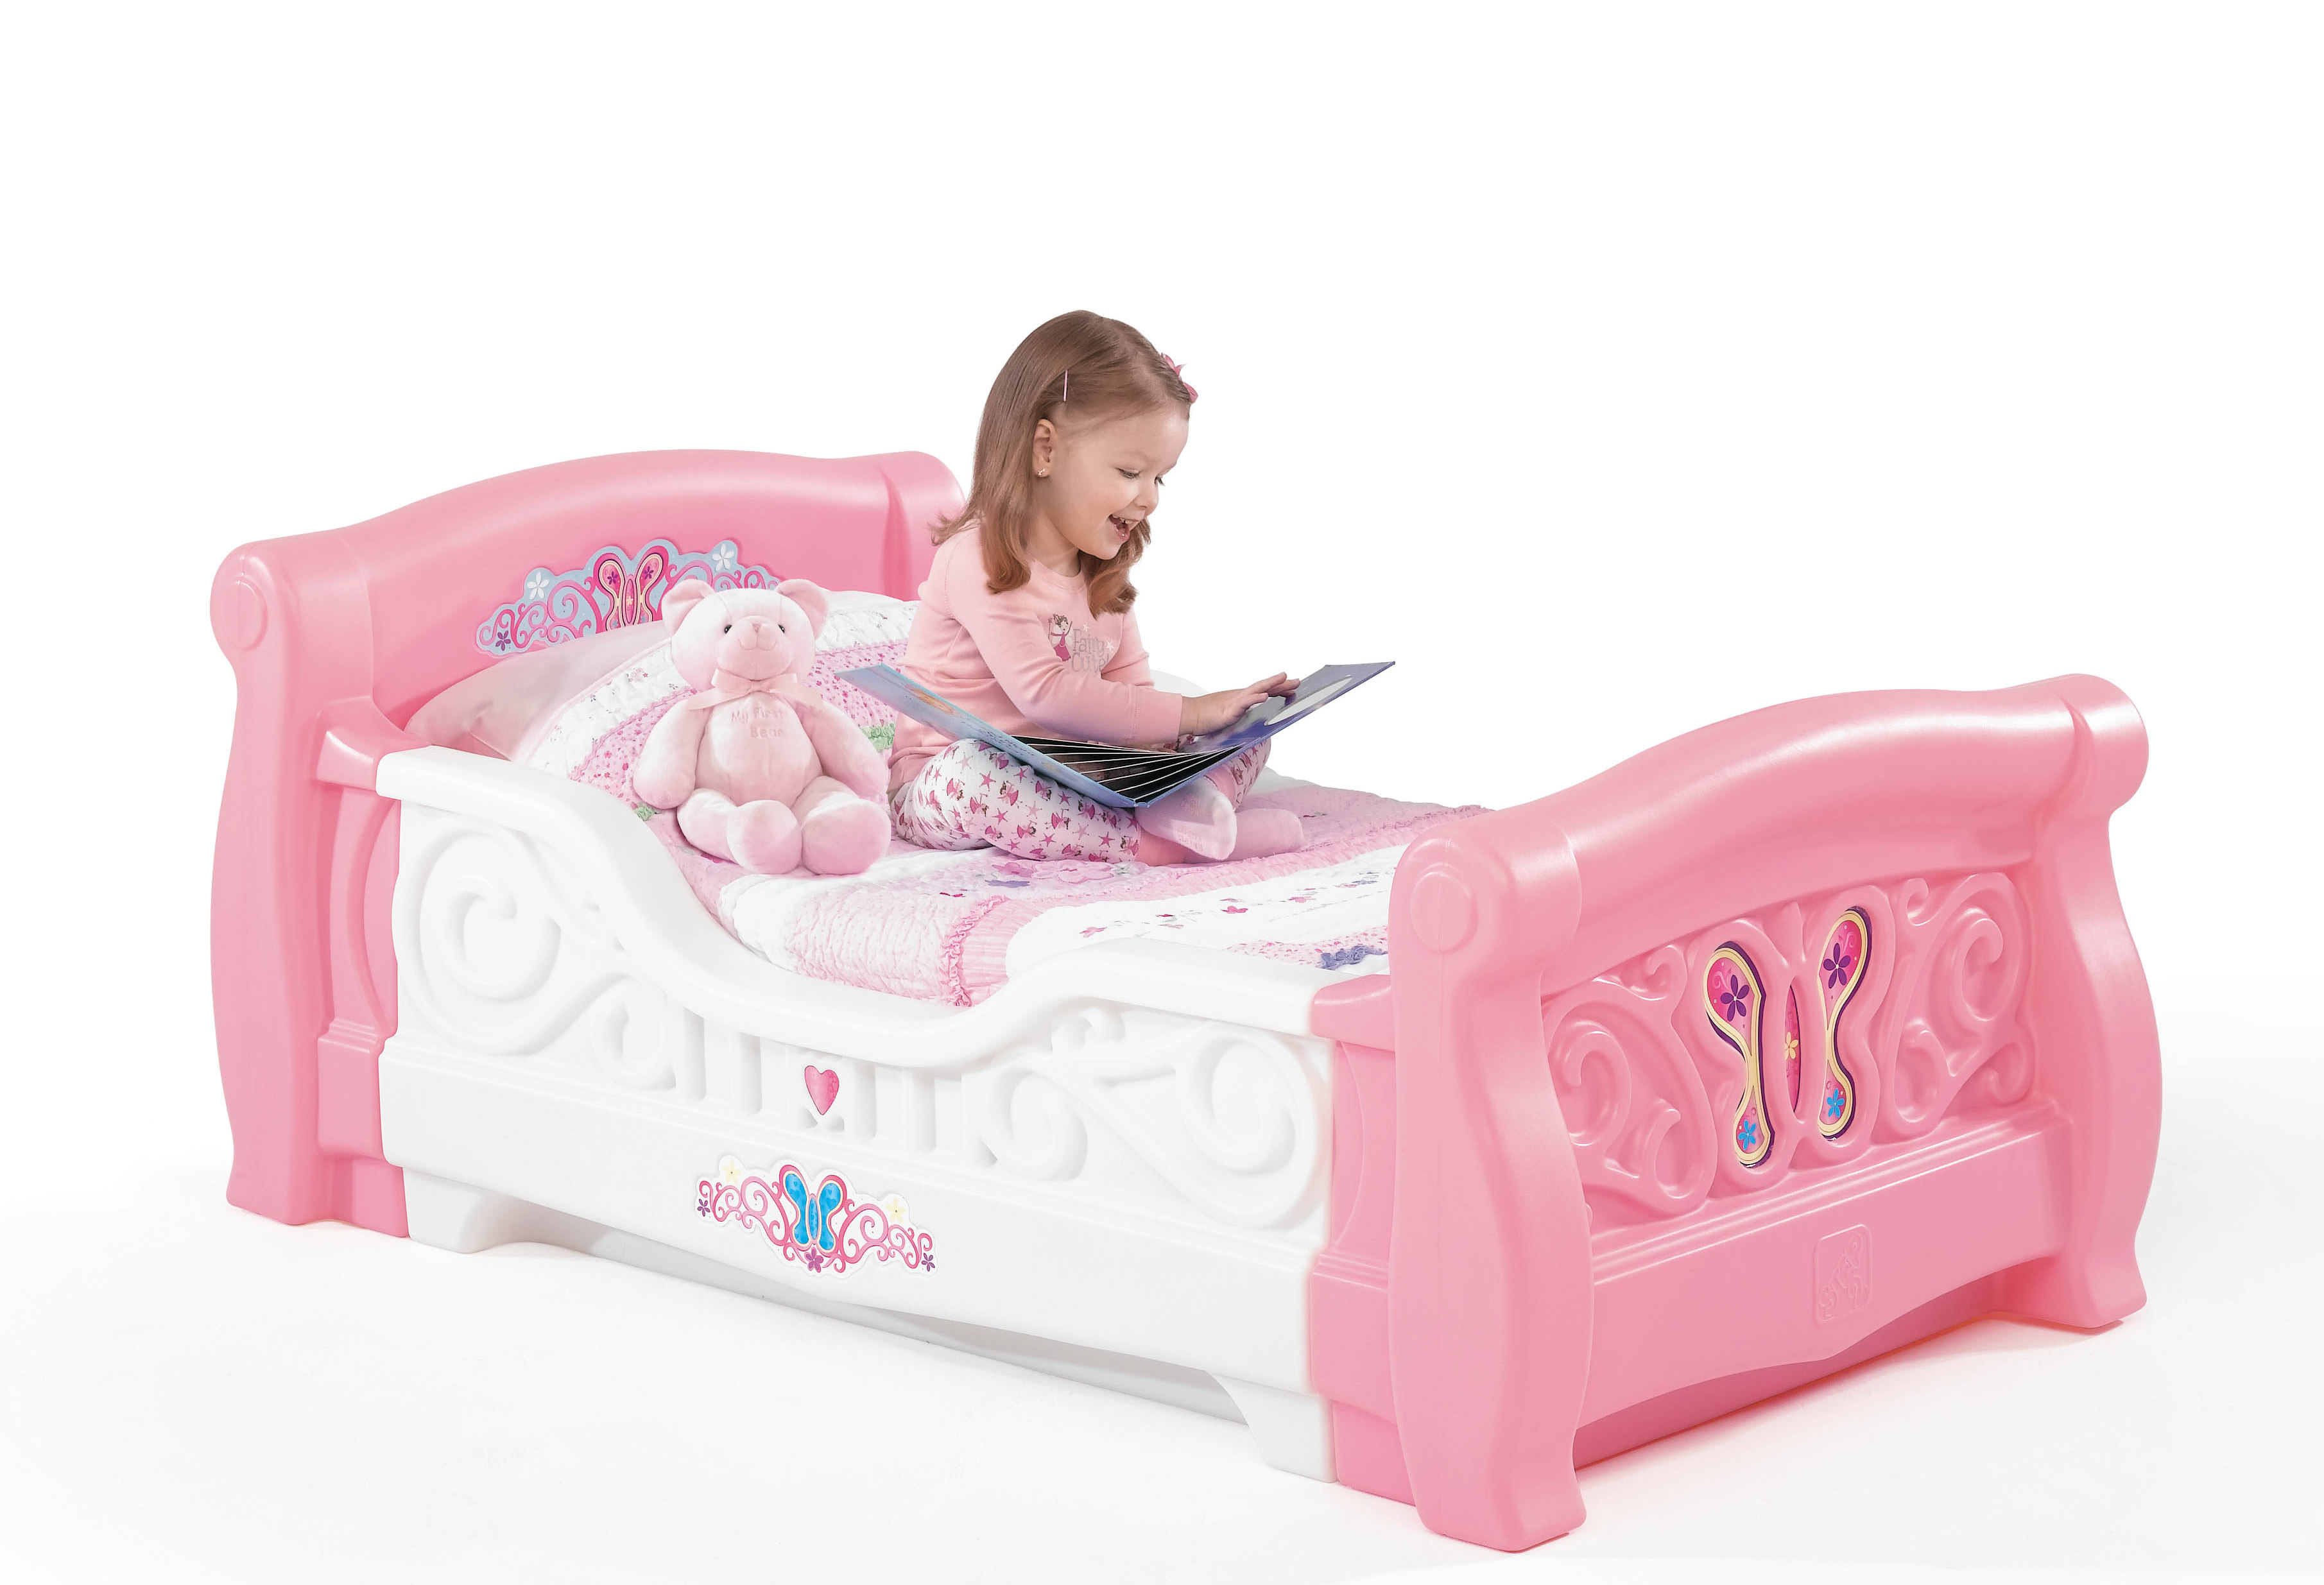 Toddler Bed For Girl Step 2 Girl 39s Toddler Sleigh Bed Baby Toddler